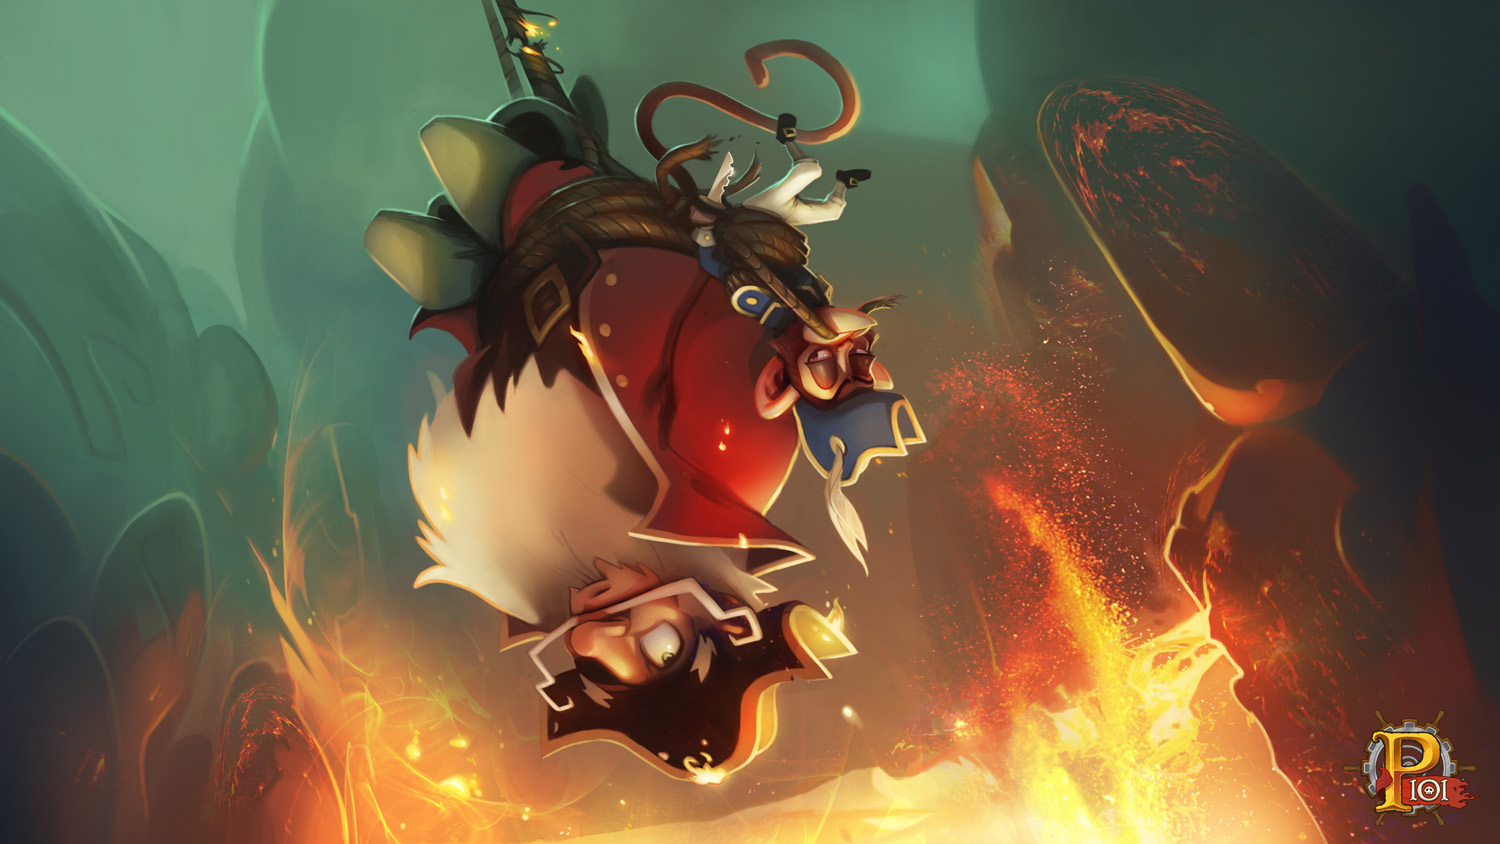 New Pirate101 Concept Art | Tales of the Spiral